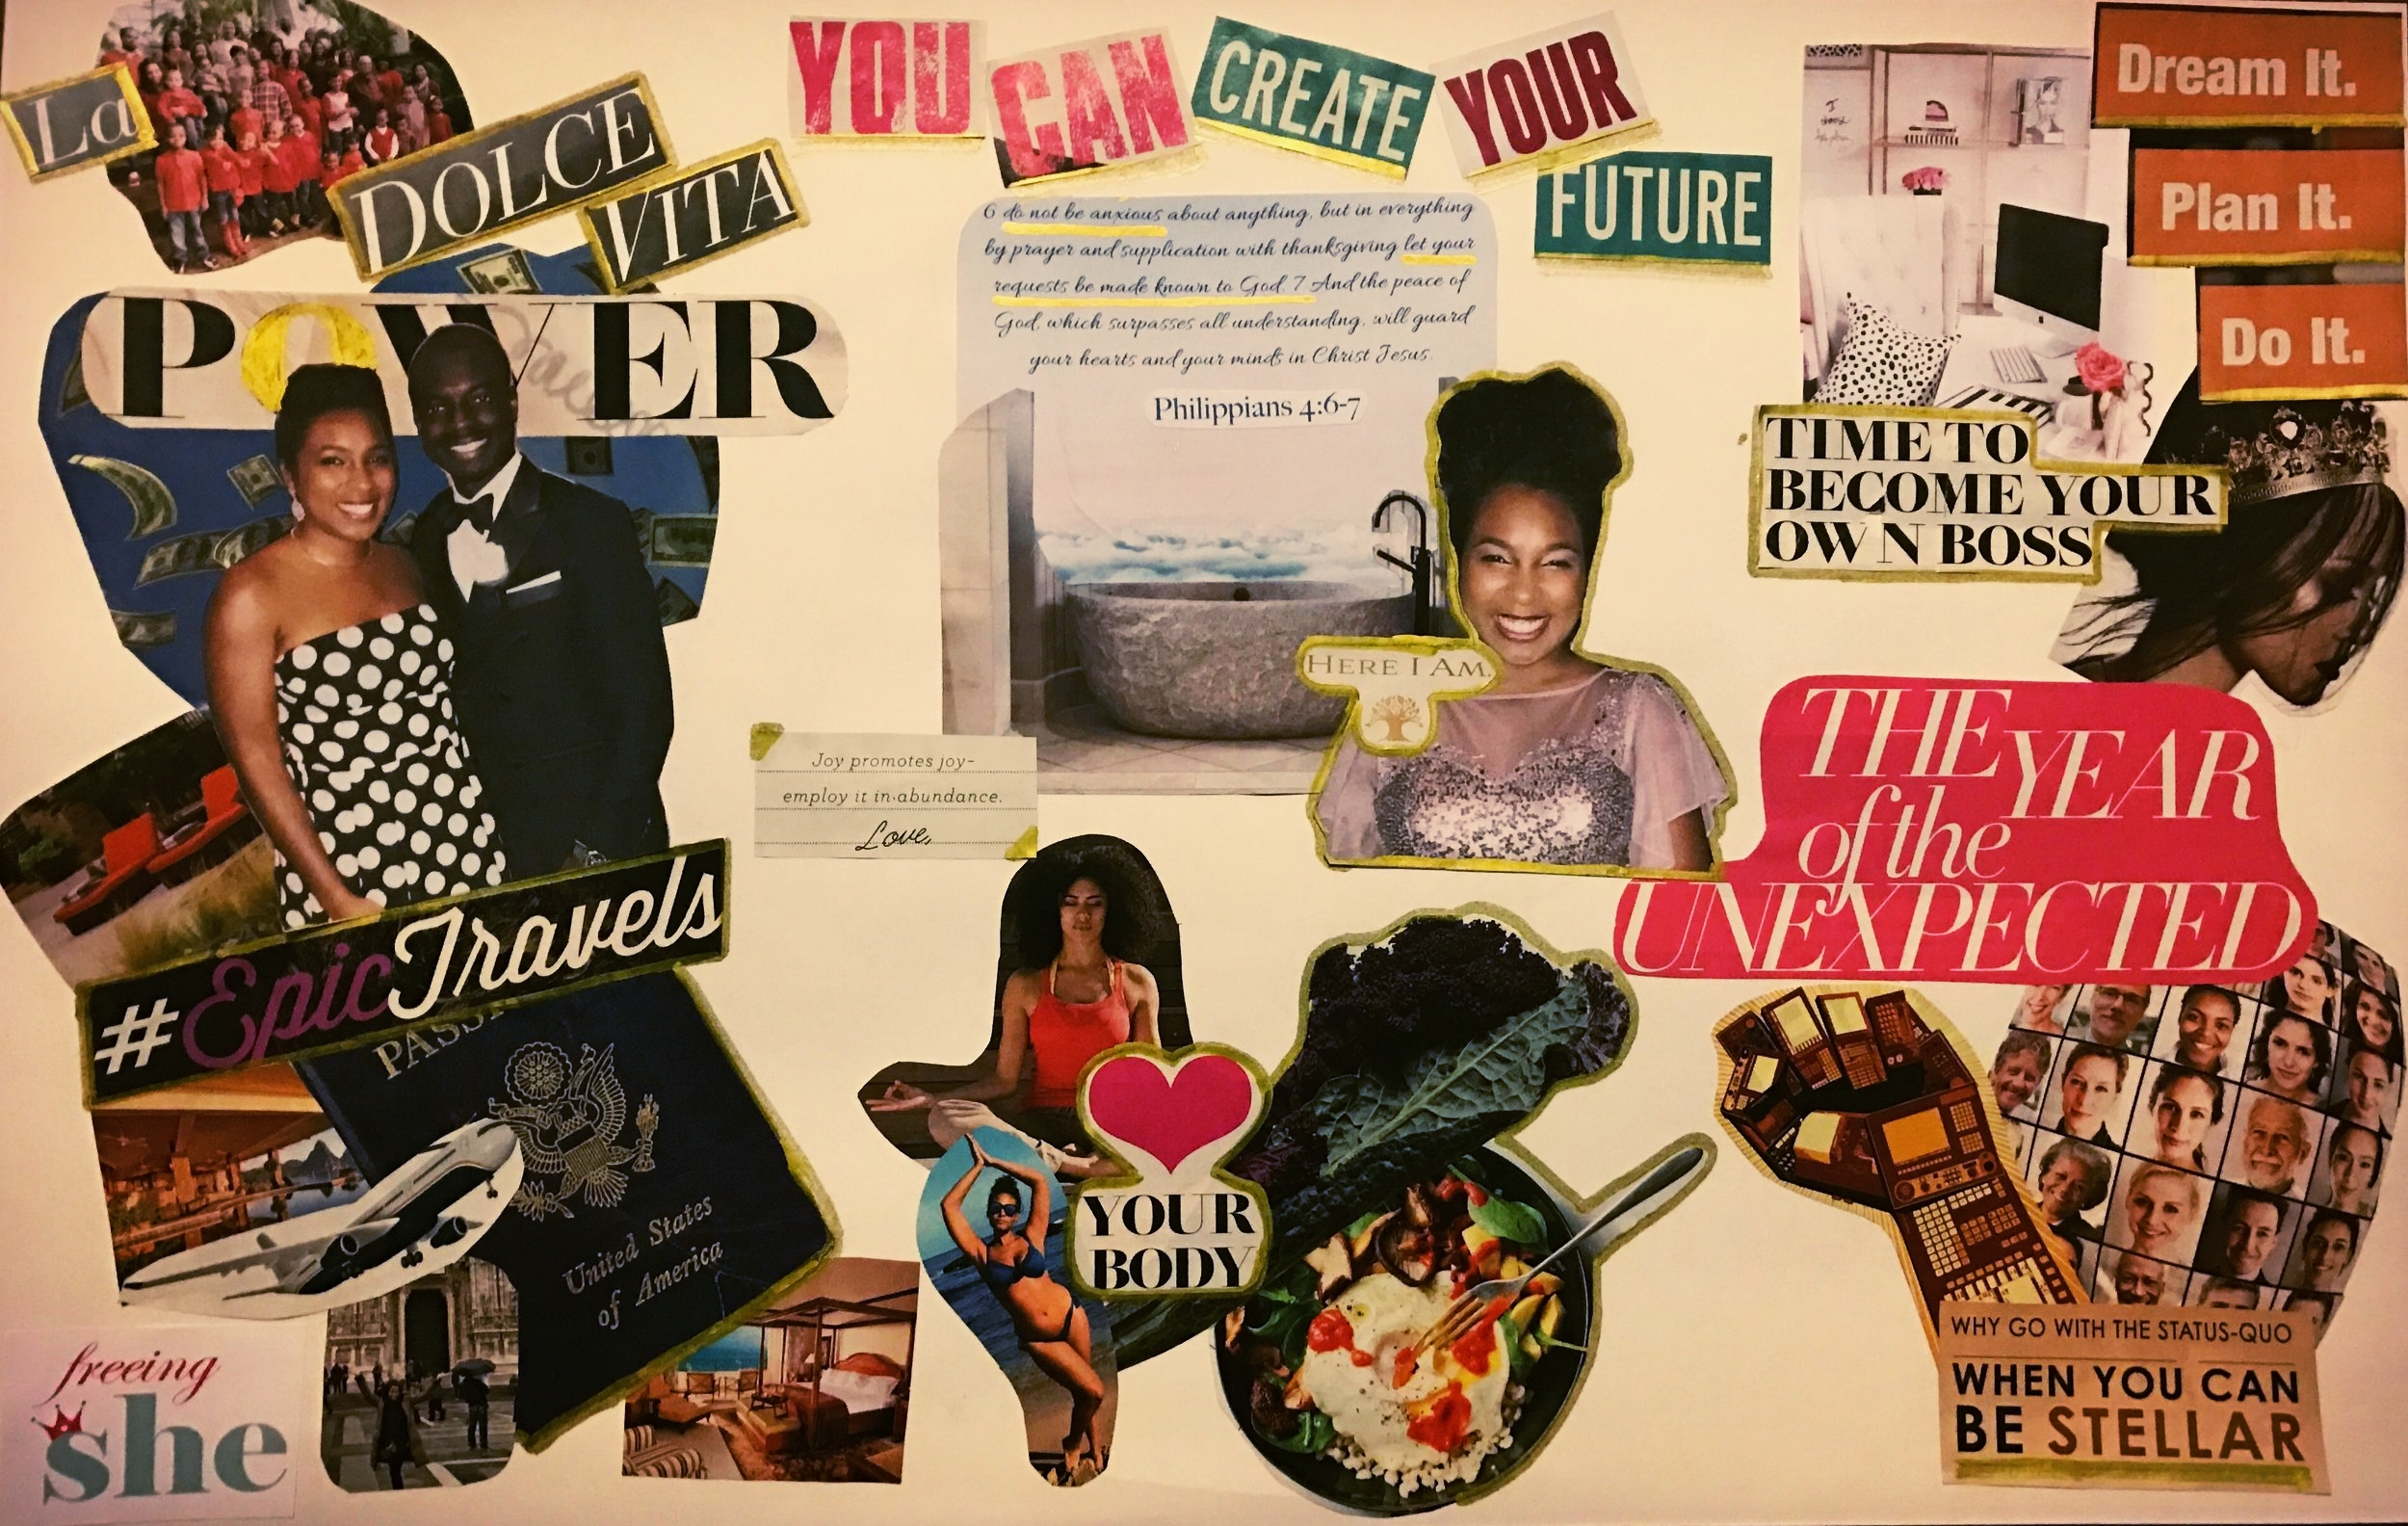 vision-board-party-freeing-she.jpeg